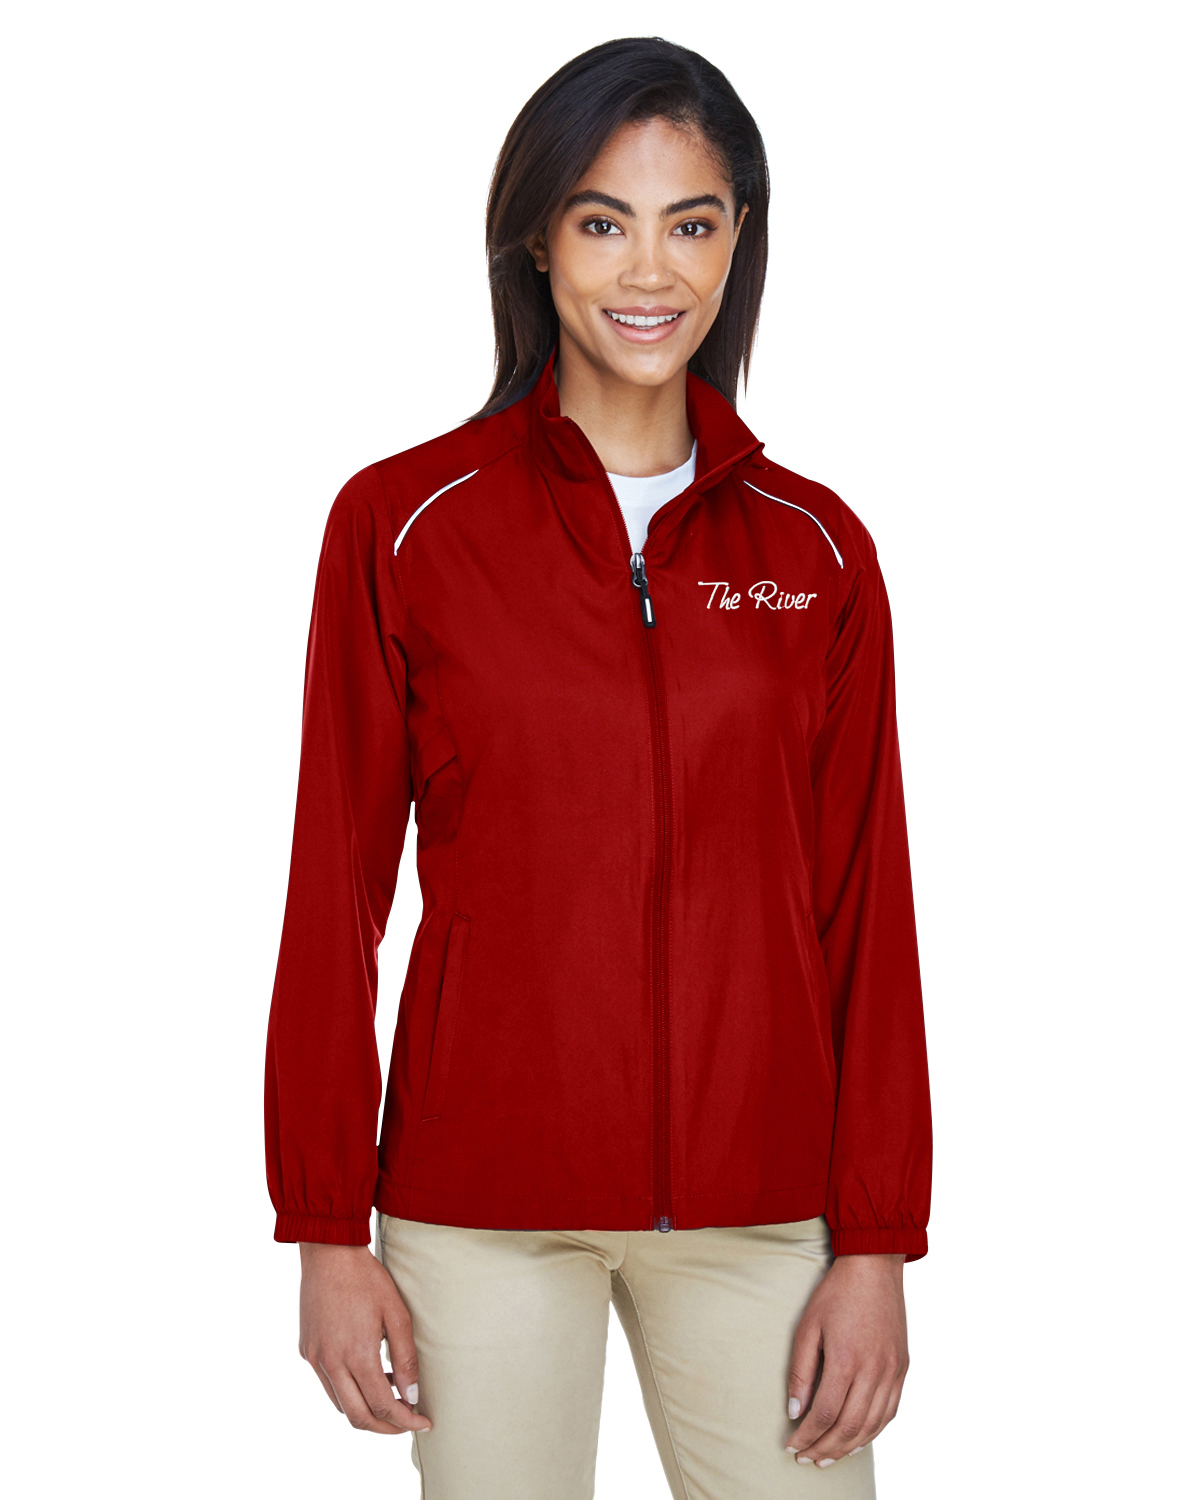 78183Prime Plus Core 365 Ladies' Motivate Unlined Lightweight Jacket Classic Red